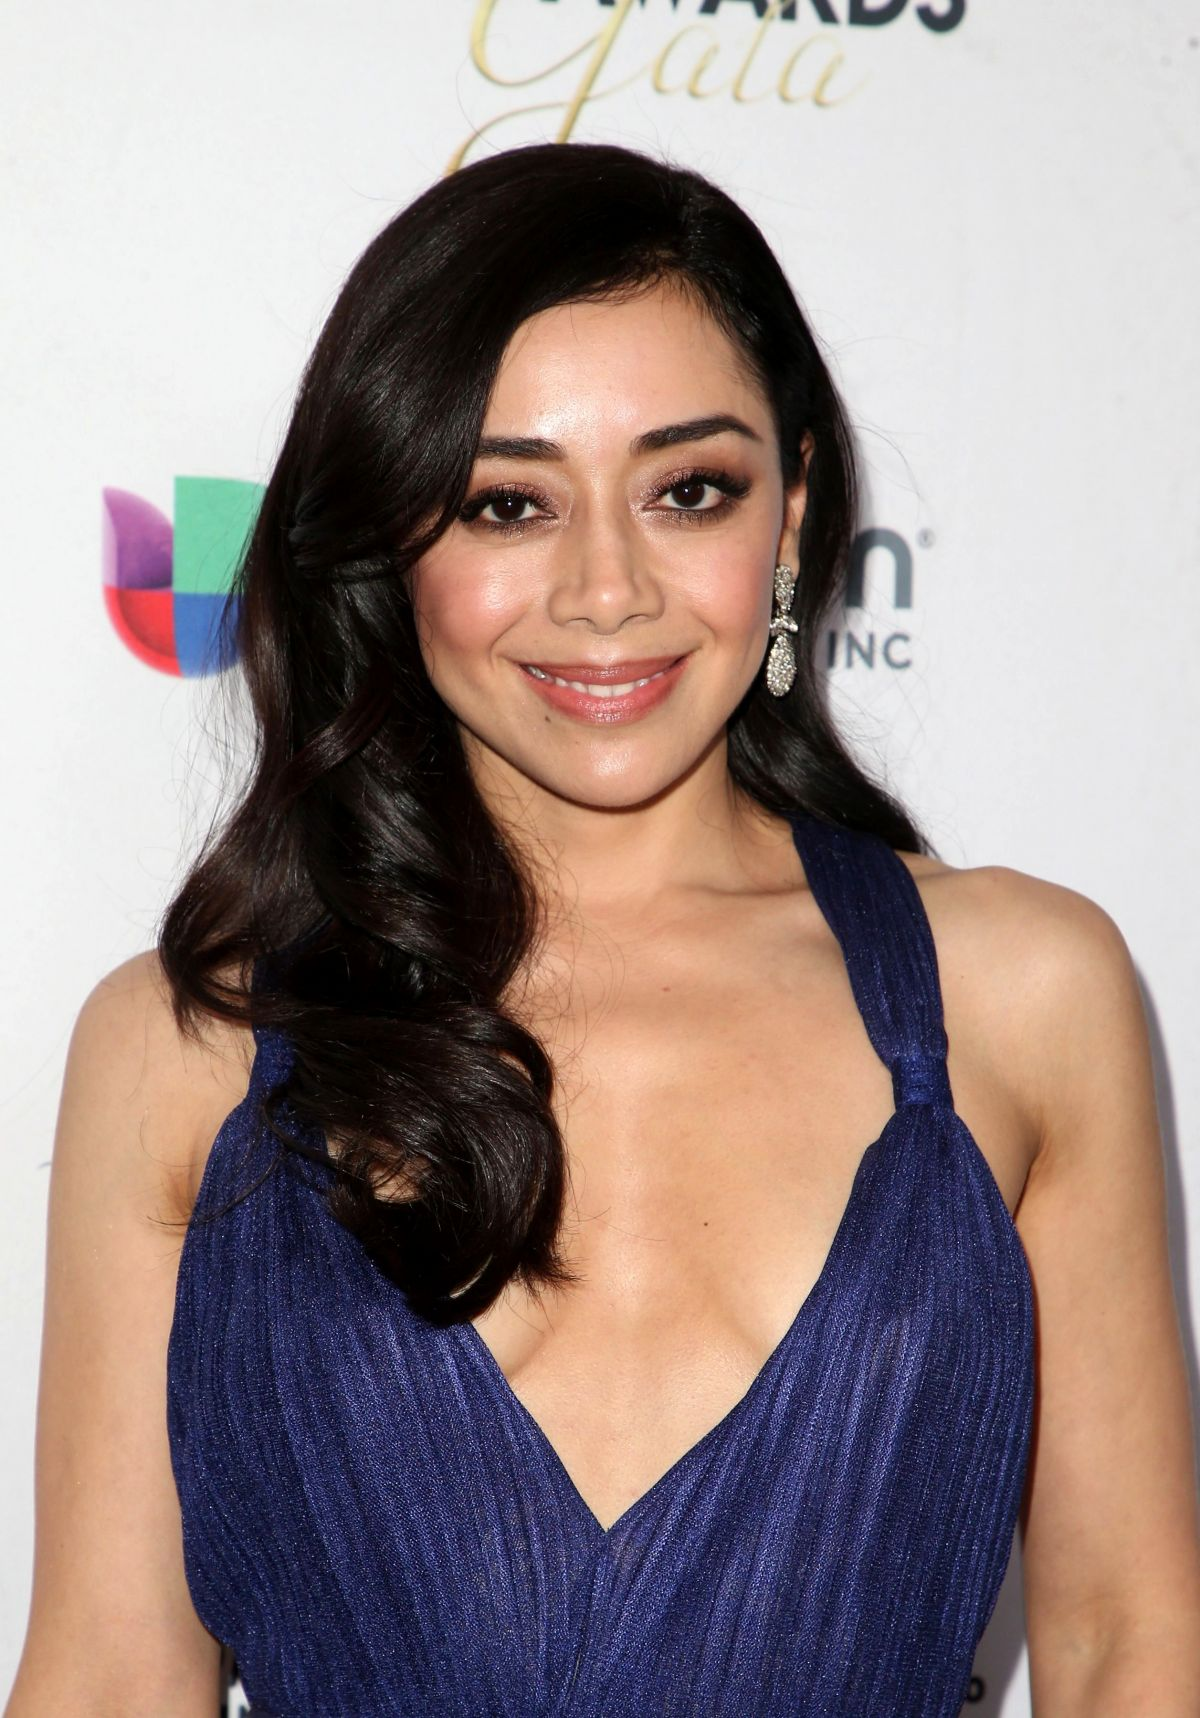 Fotos Aimee Garcia naked (33 foto and video), Topless, Hot, Selfie, butt 2019